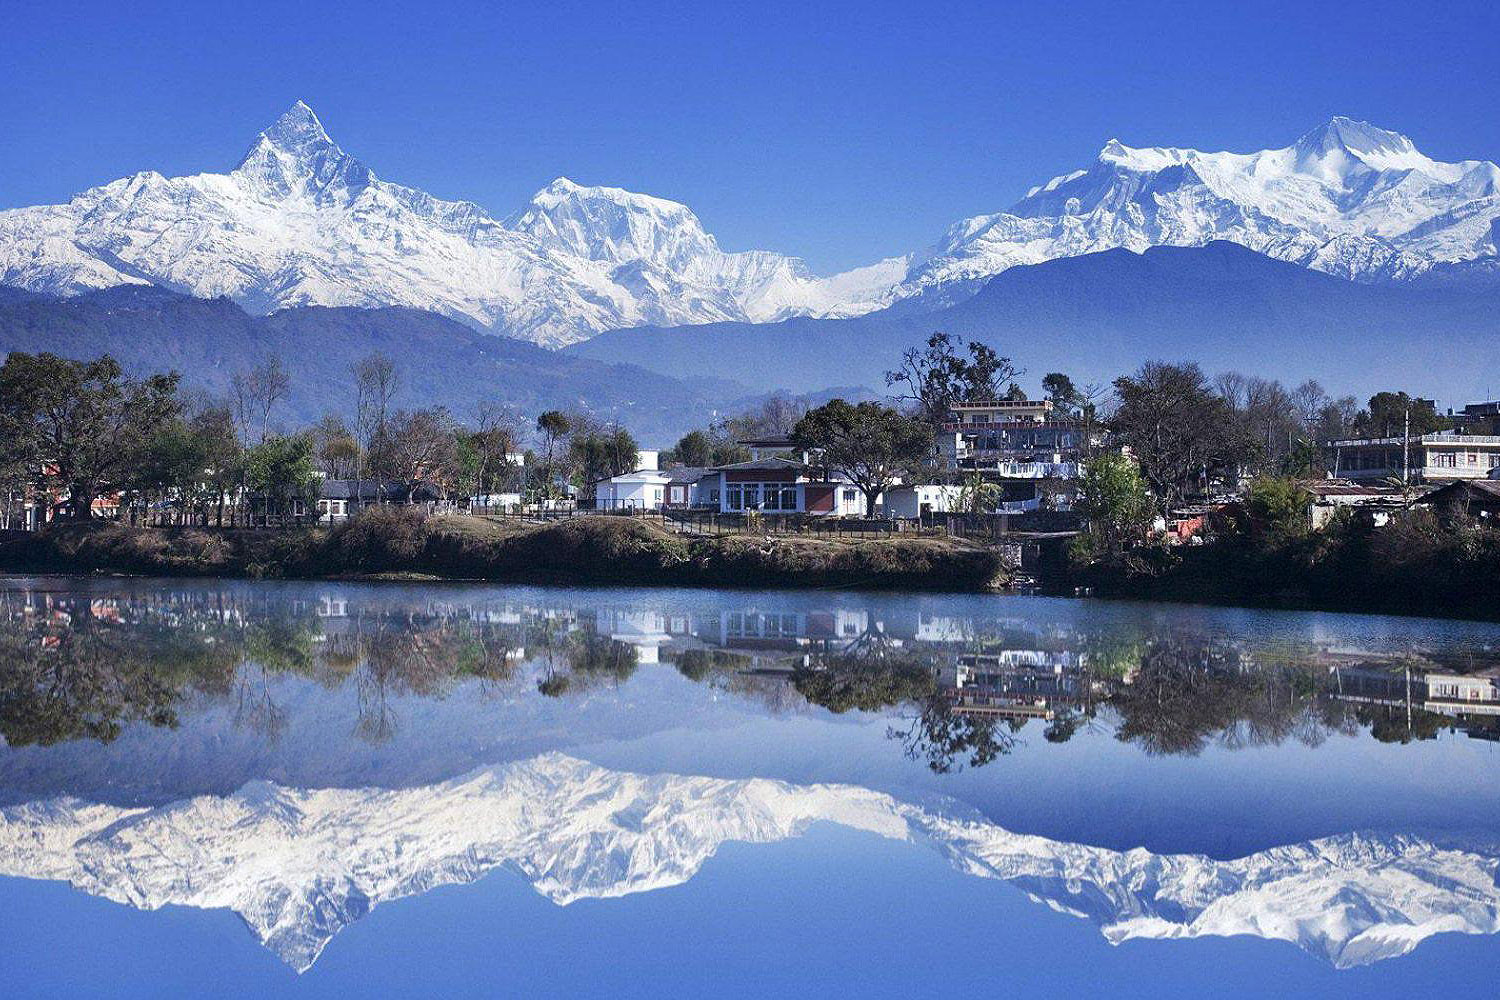 Pokhara, this is where we stay for the heli ski week.